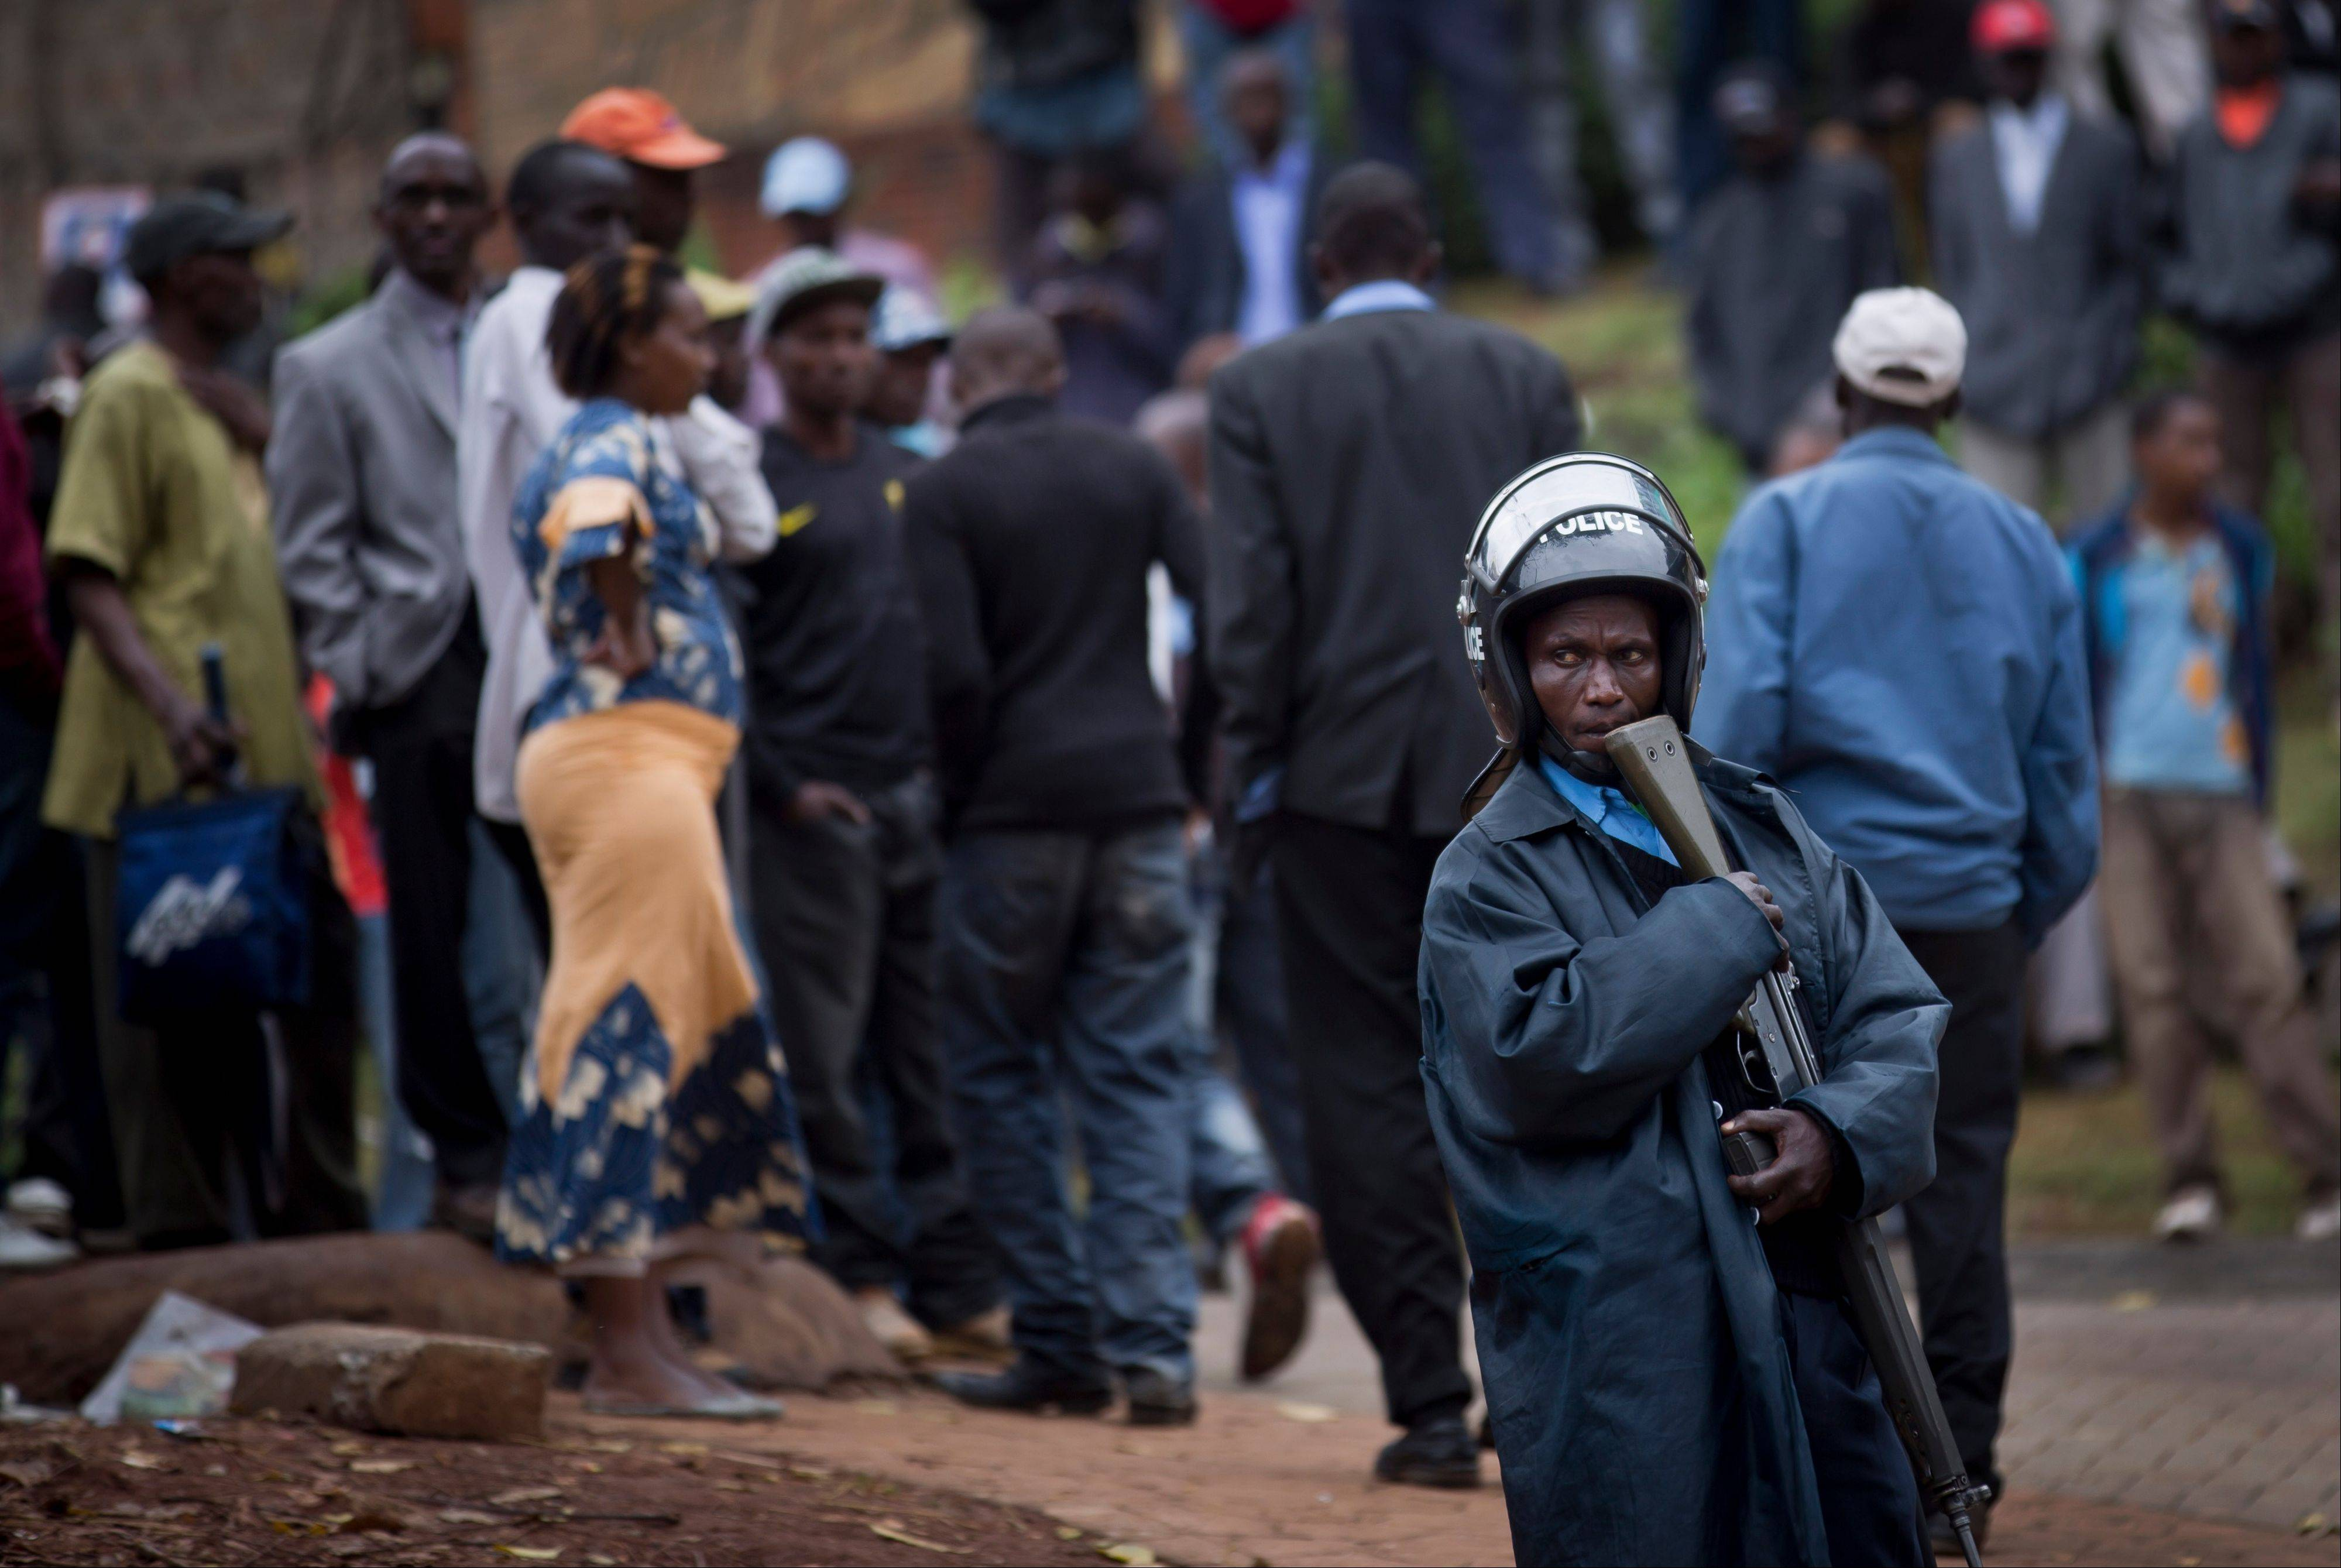 A Kenyan policeman keeps crowds of onlookers back from the Westgate Mall, in Nairobi, Kenya Monday, Sept. 23, 2013. Four large blasts rocked Kenya's Westgate Mall on Monday, sending large plumes of smoke over an upscale suburb as Kenyan military forces sought to rescue an unknown number of hostages held by al-Qaida-linked militants.